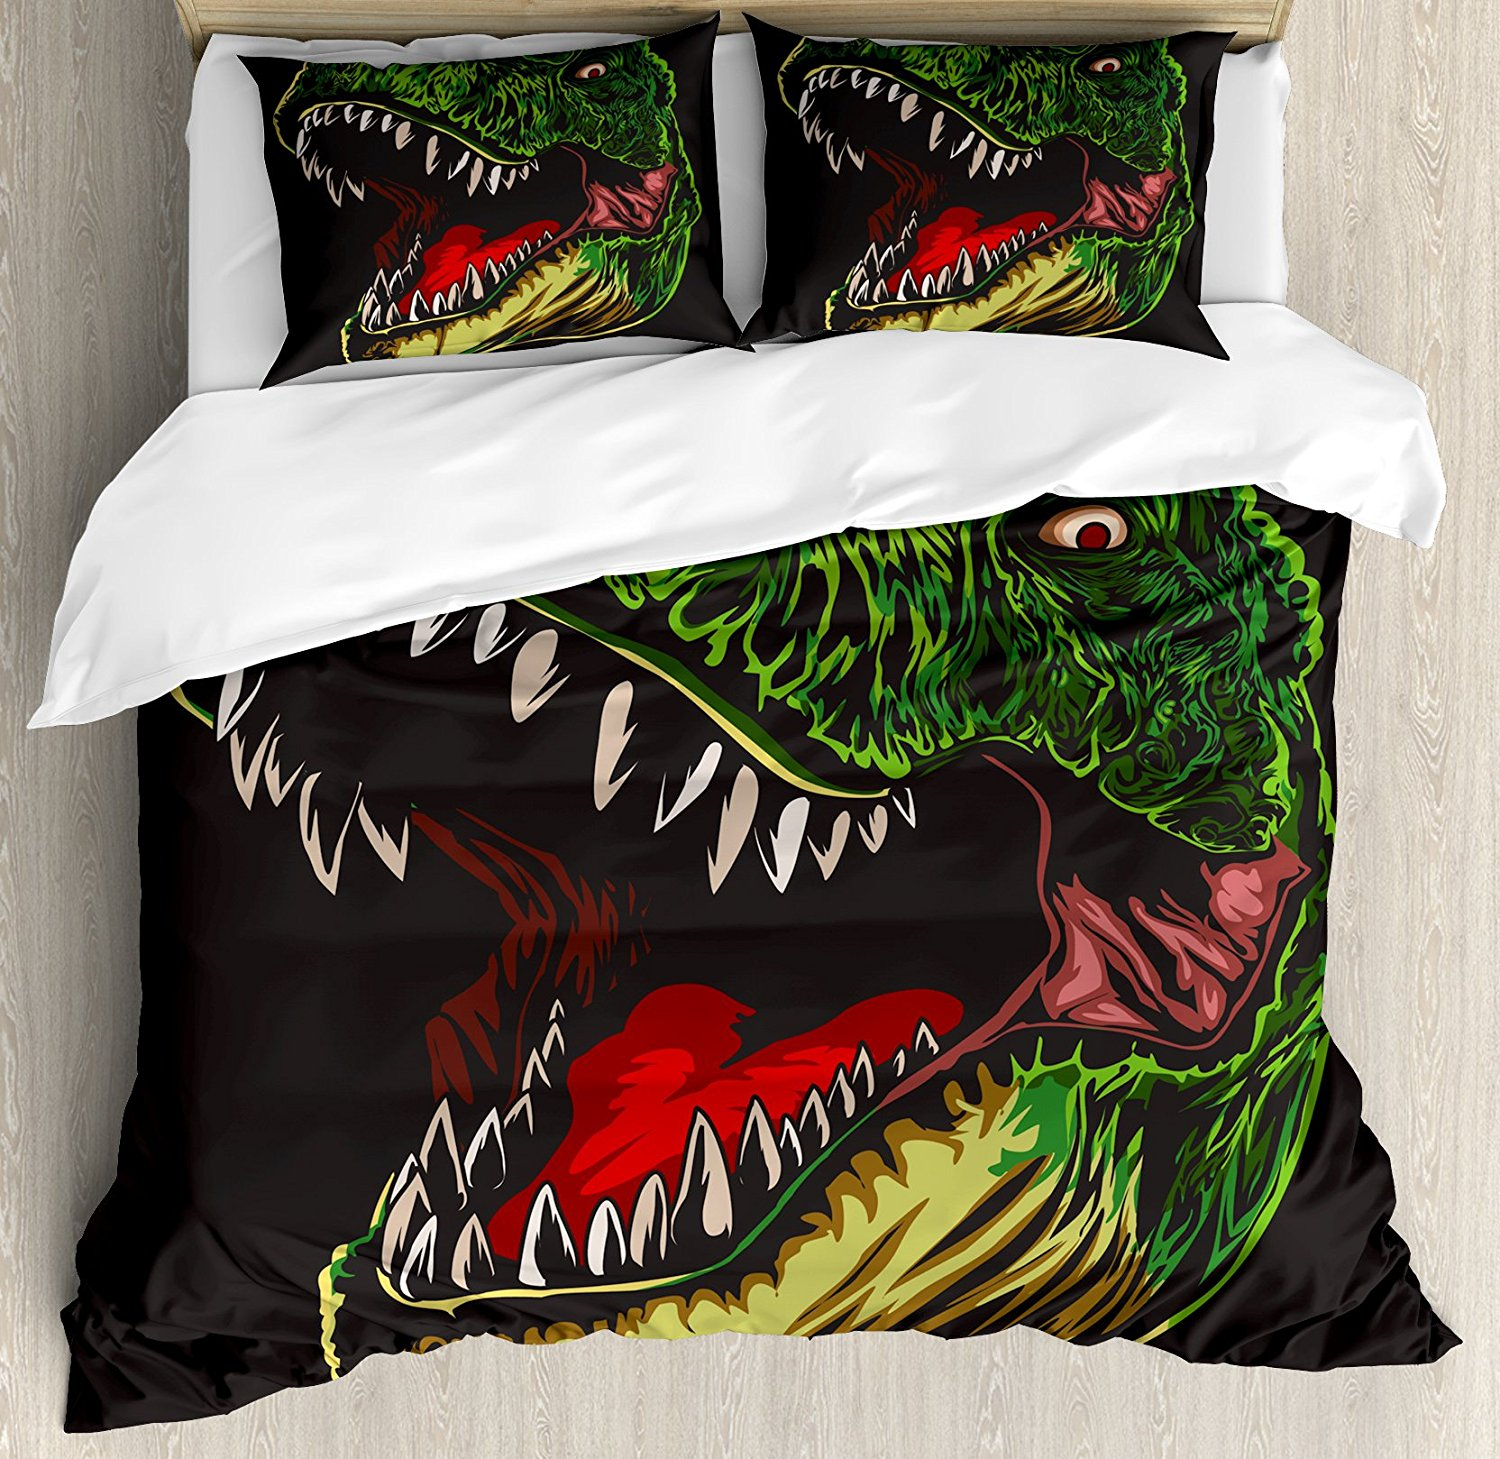 Dinosaur Duvet Cover Set Aggressive Wild T-Rex Head Colorful Hand Drawn Style Jurassic Period, Decorative 4 Piece Bedding Set